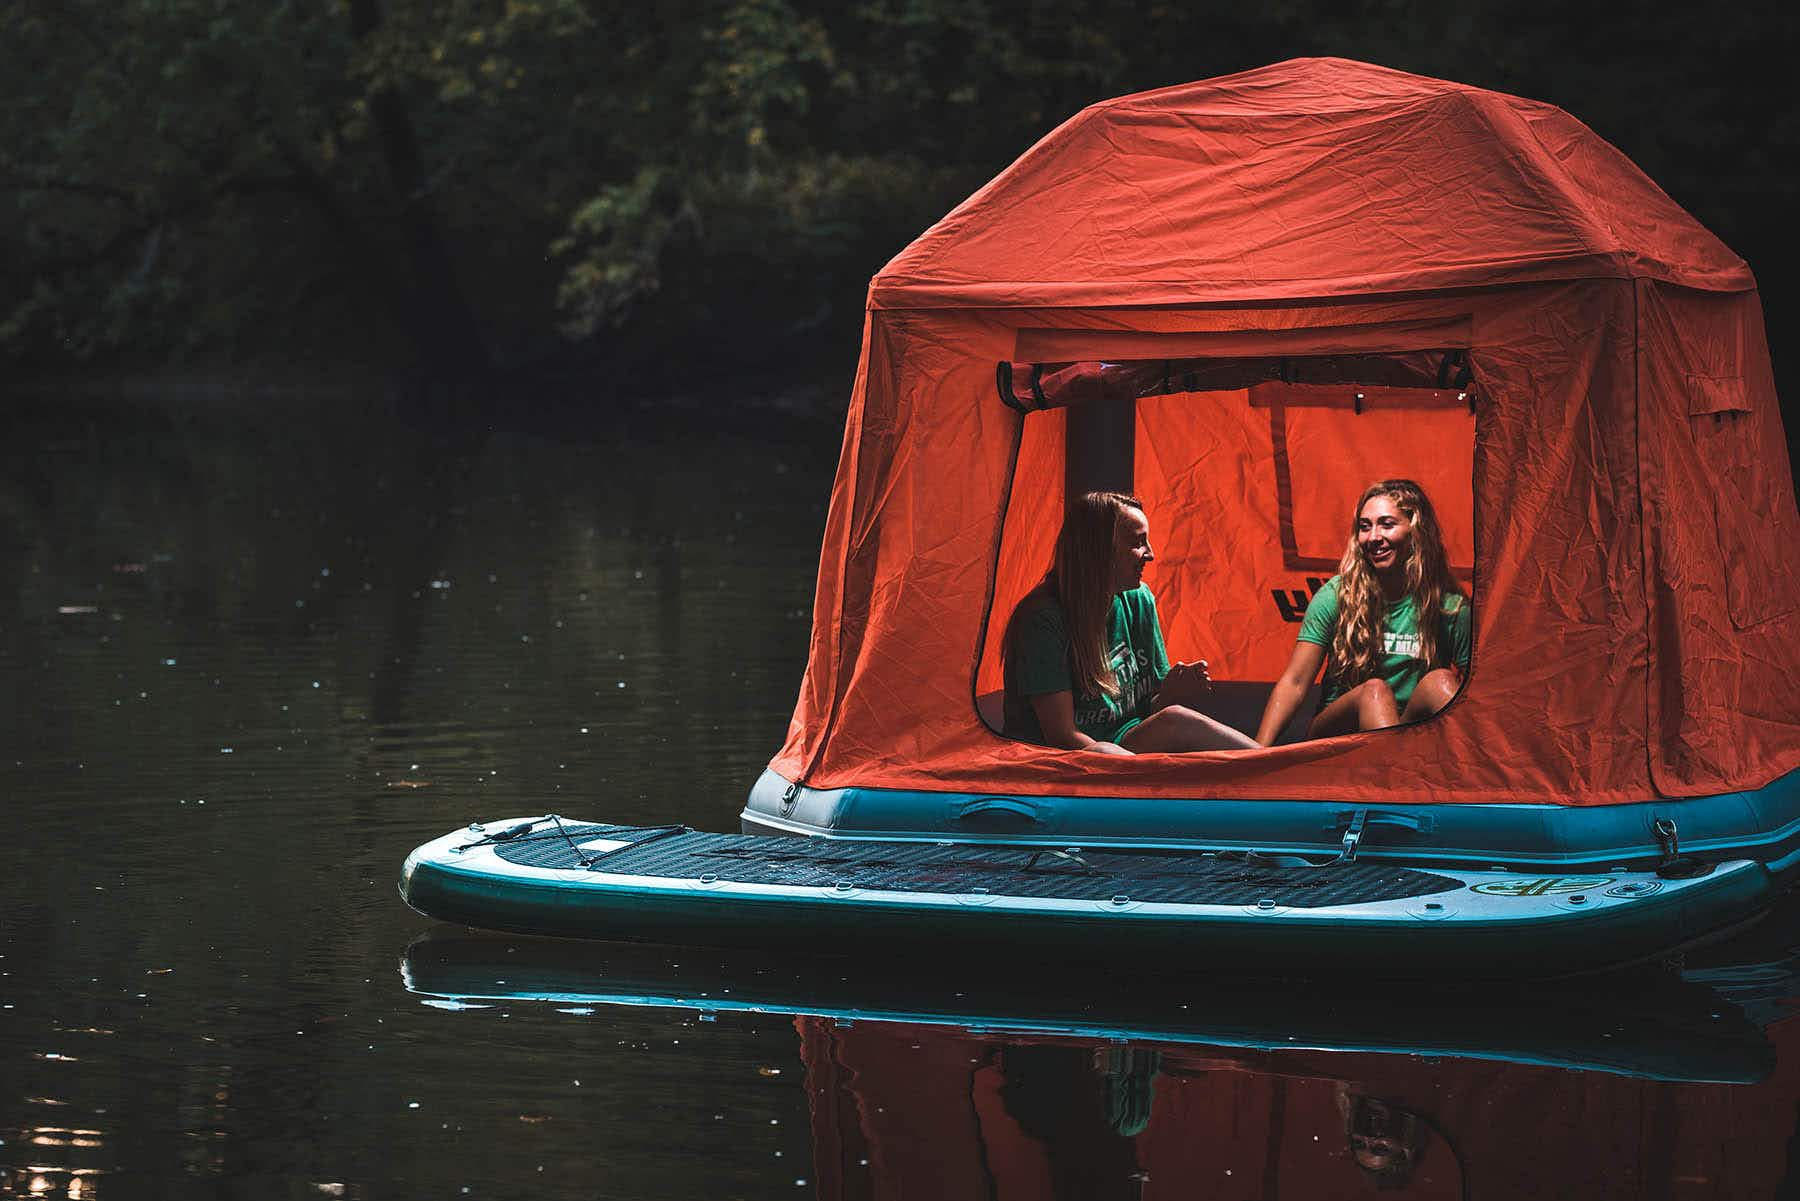 Spend a night on the water in this incredible floating tent